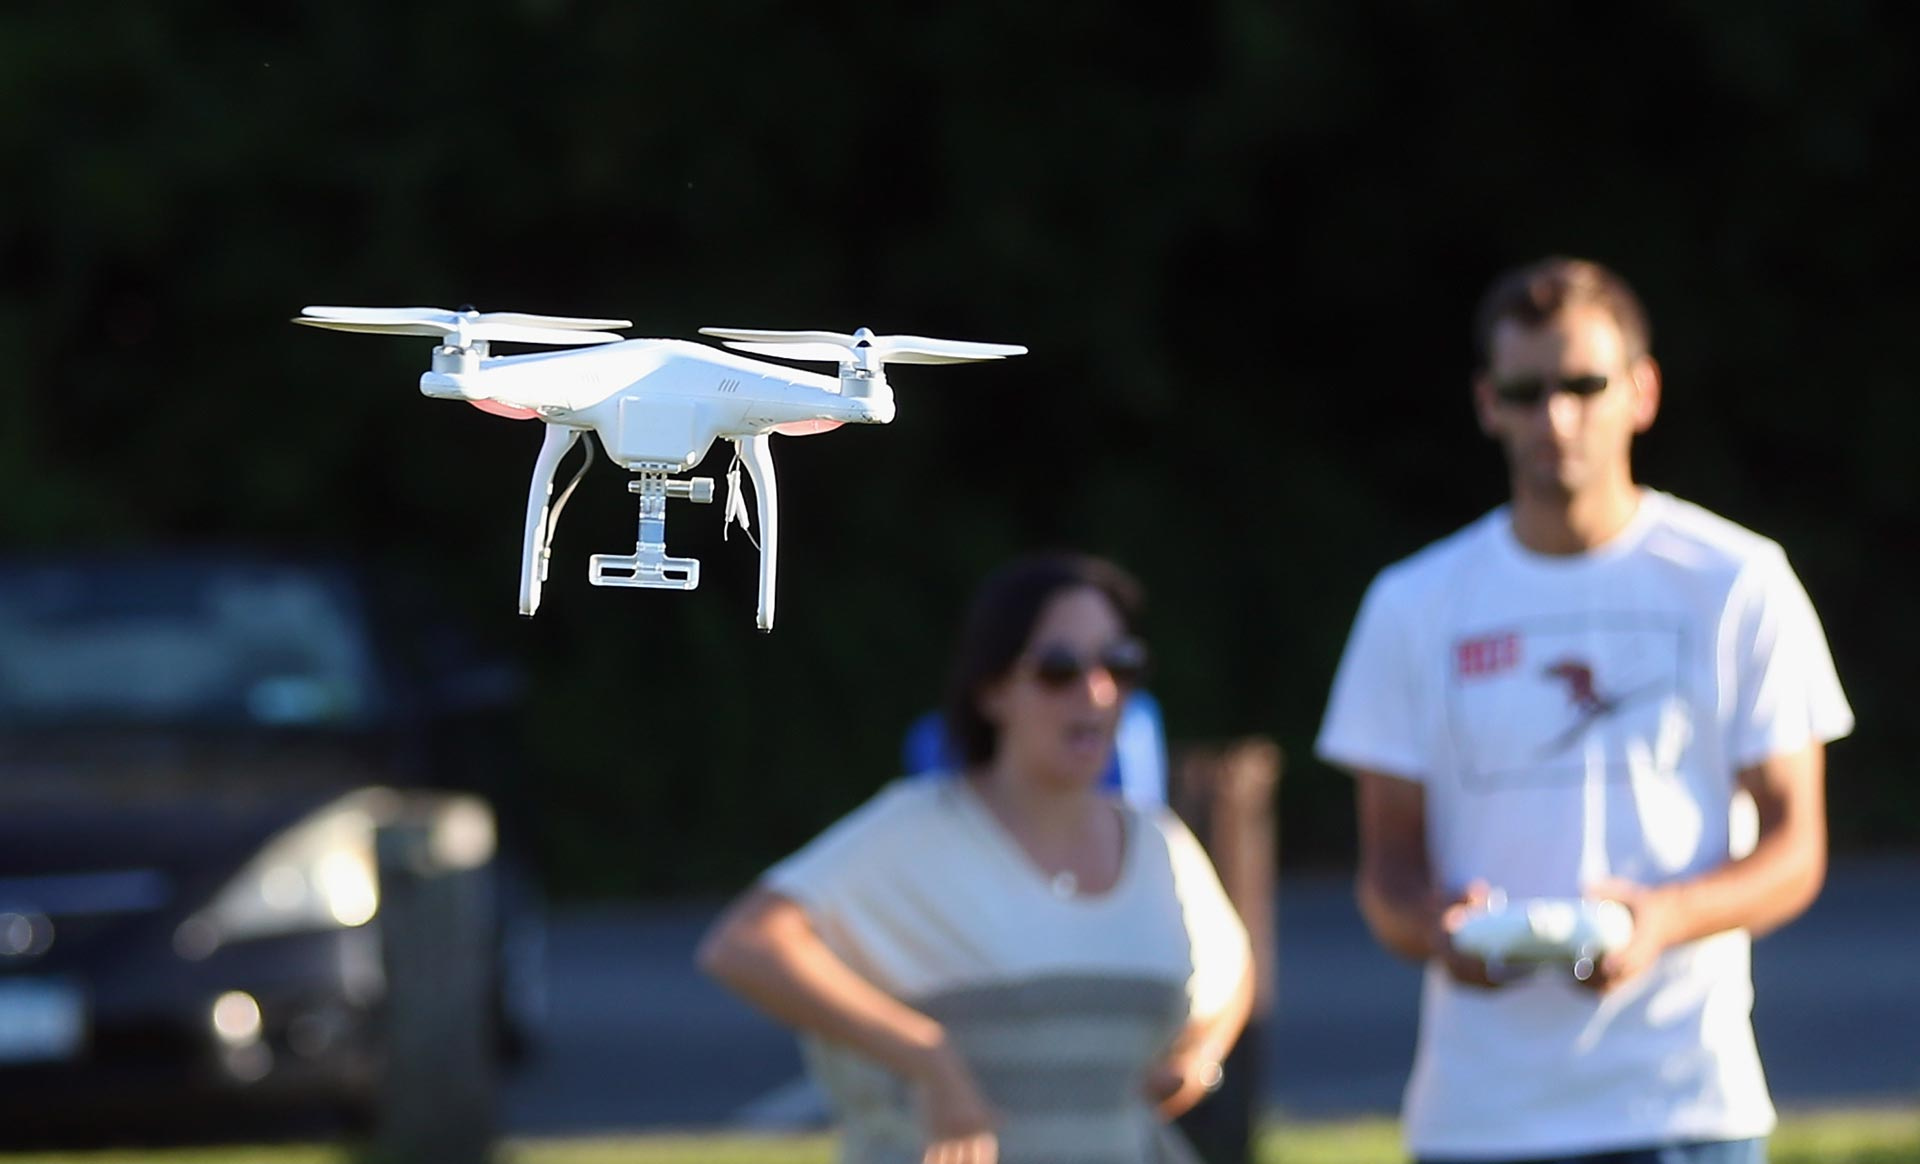 An enthusiast flies a recreational drone.